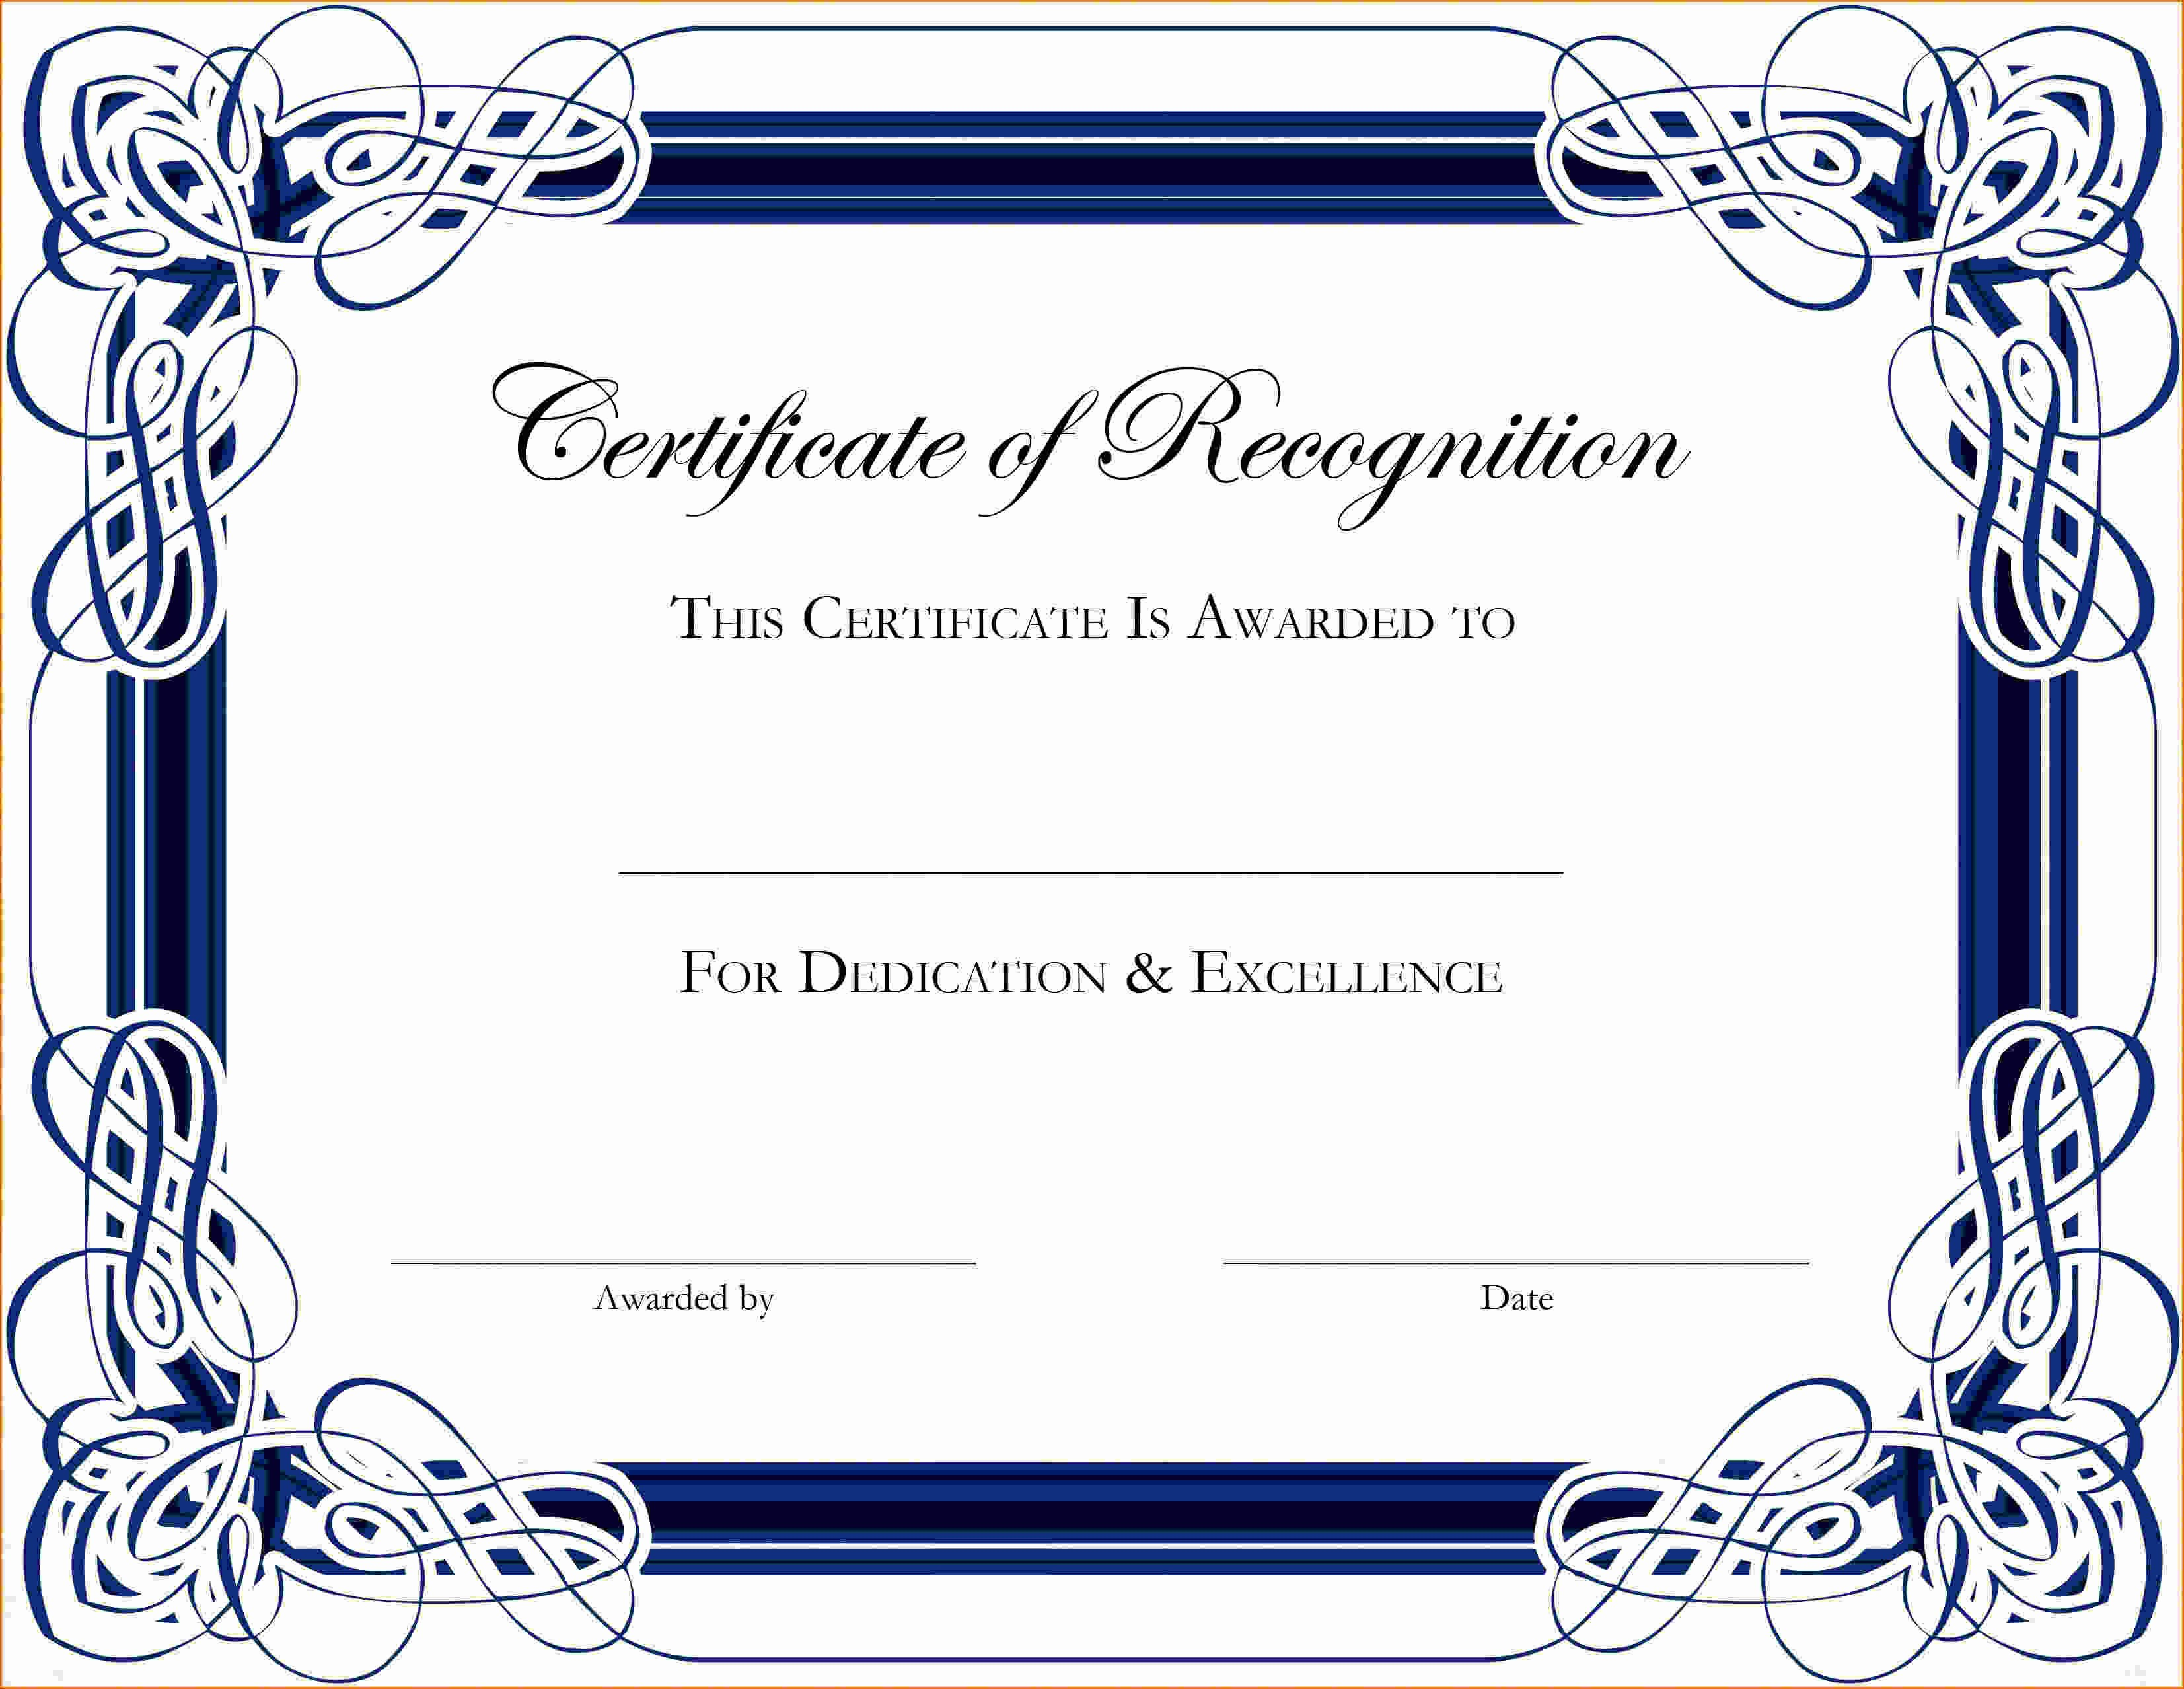 Appreciation Certificate Templates for Word Best Of 5 Certificate Of Appreciation Template Word